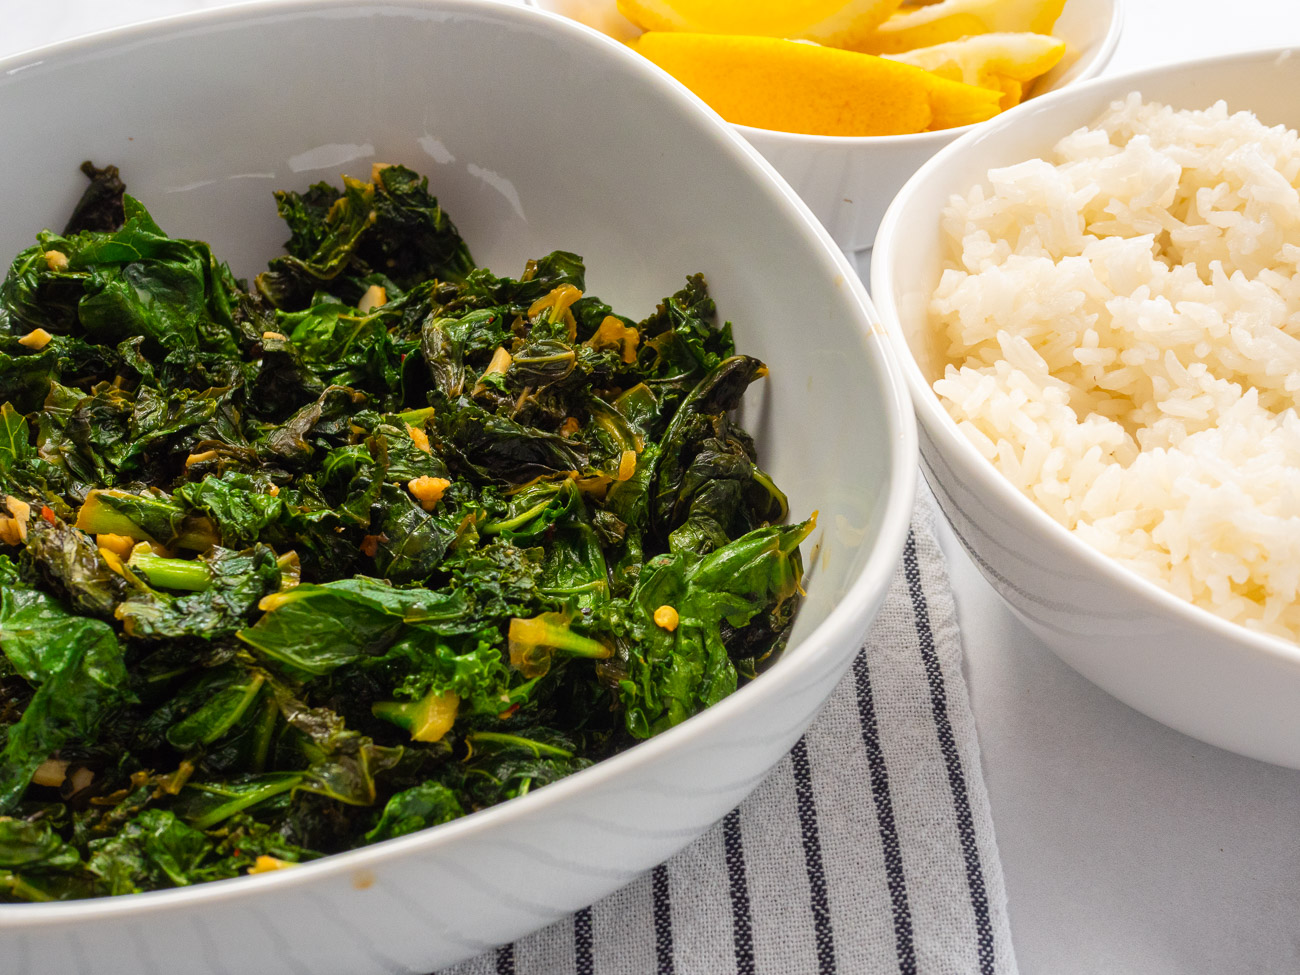 Lemon Garlic Kale Sauté